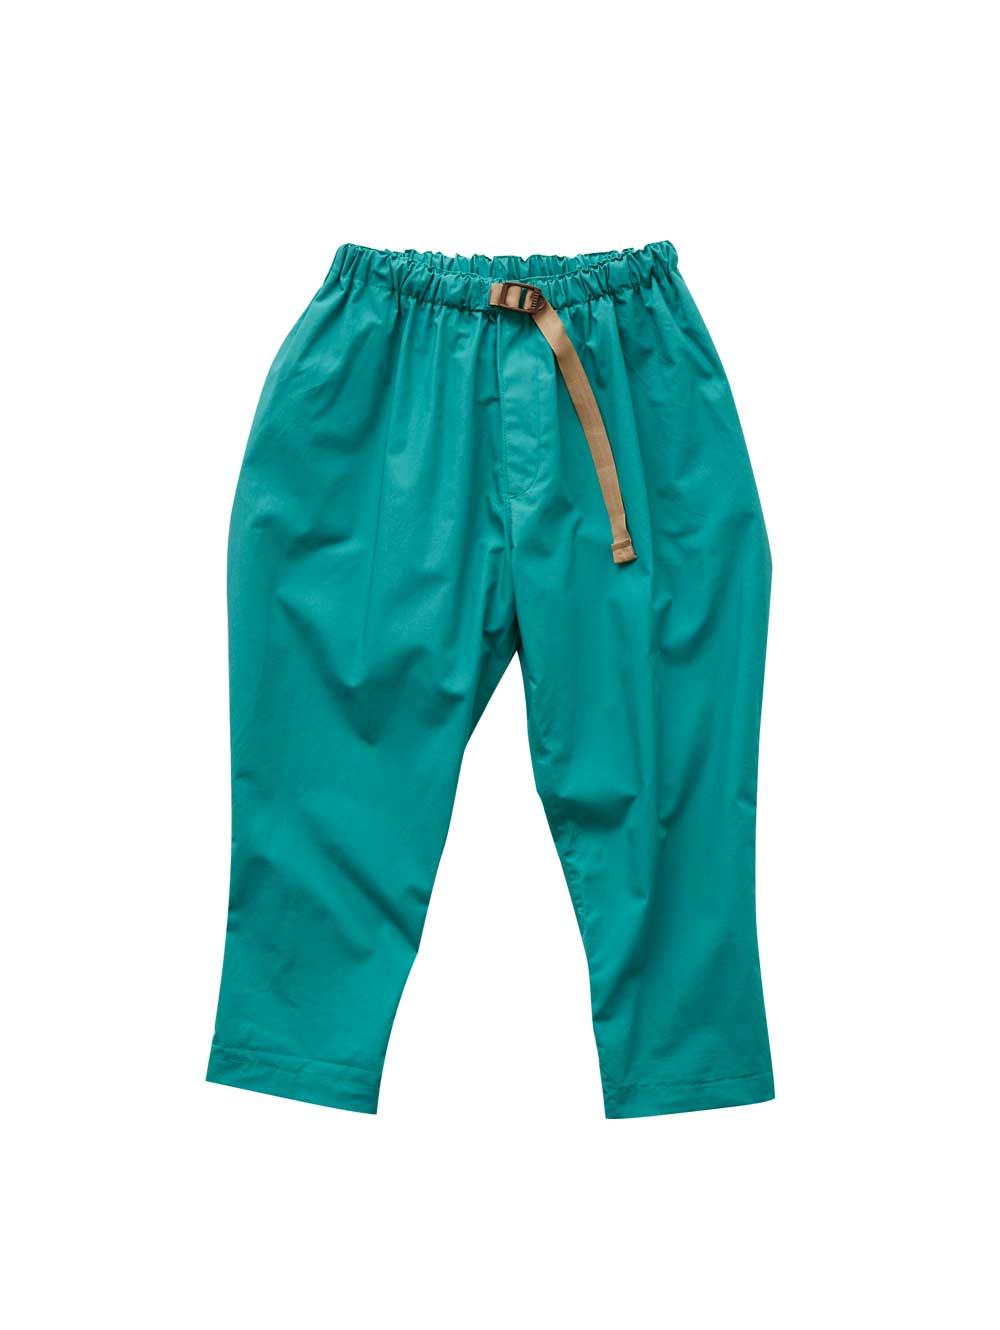 Typewriter Green Pants